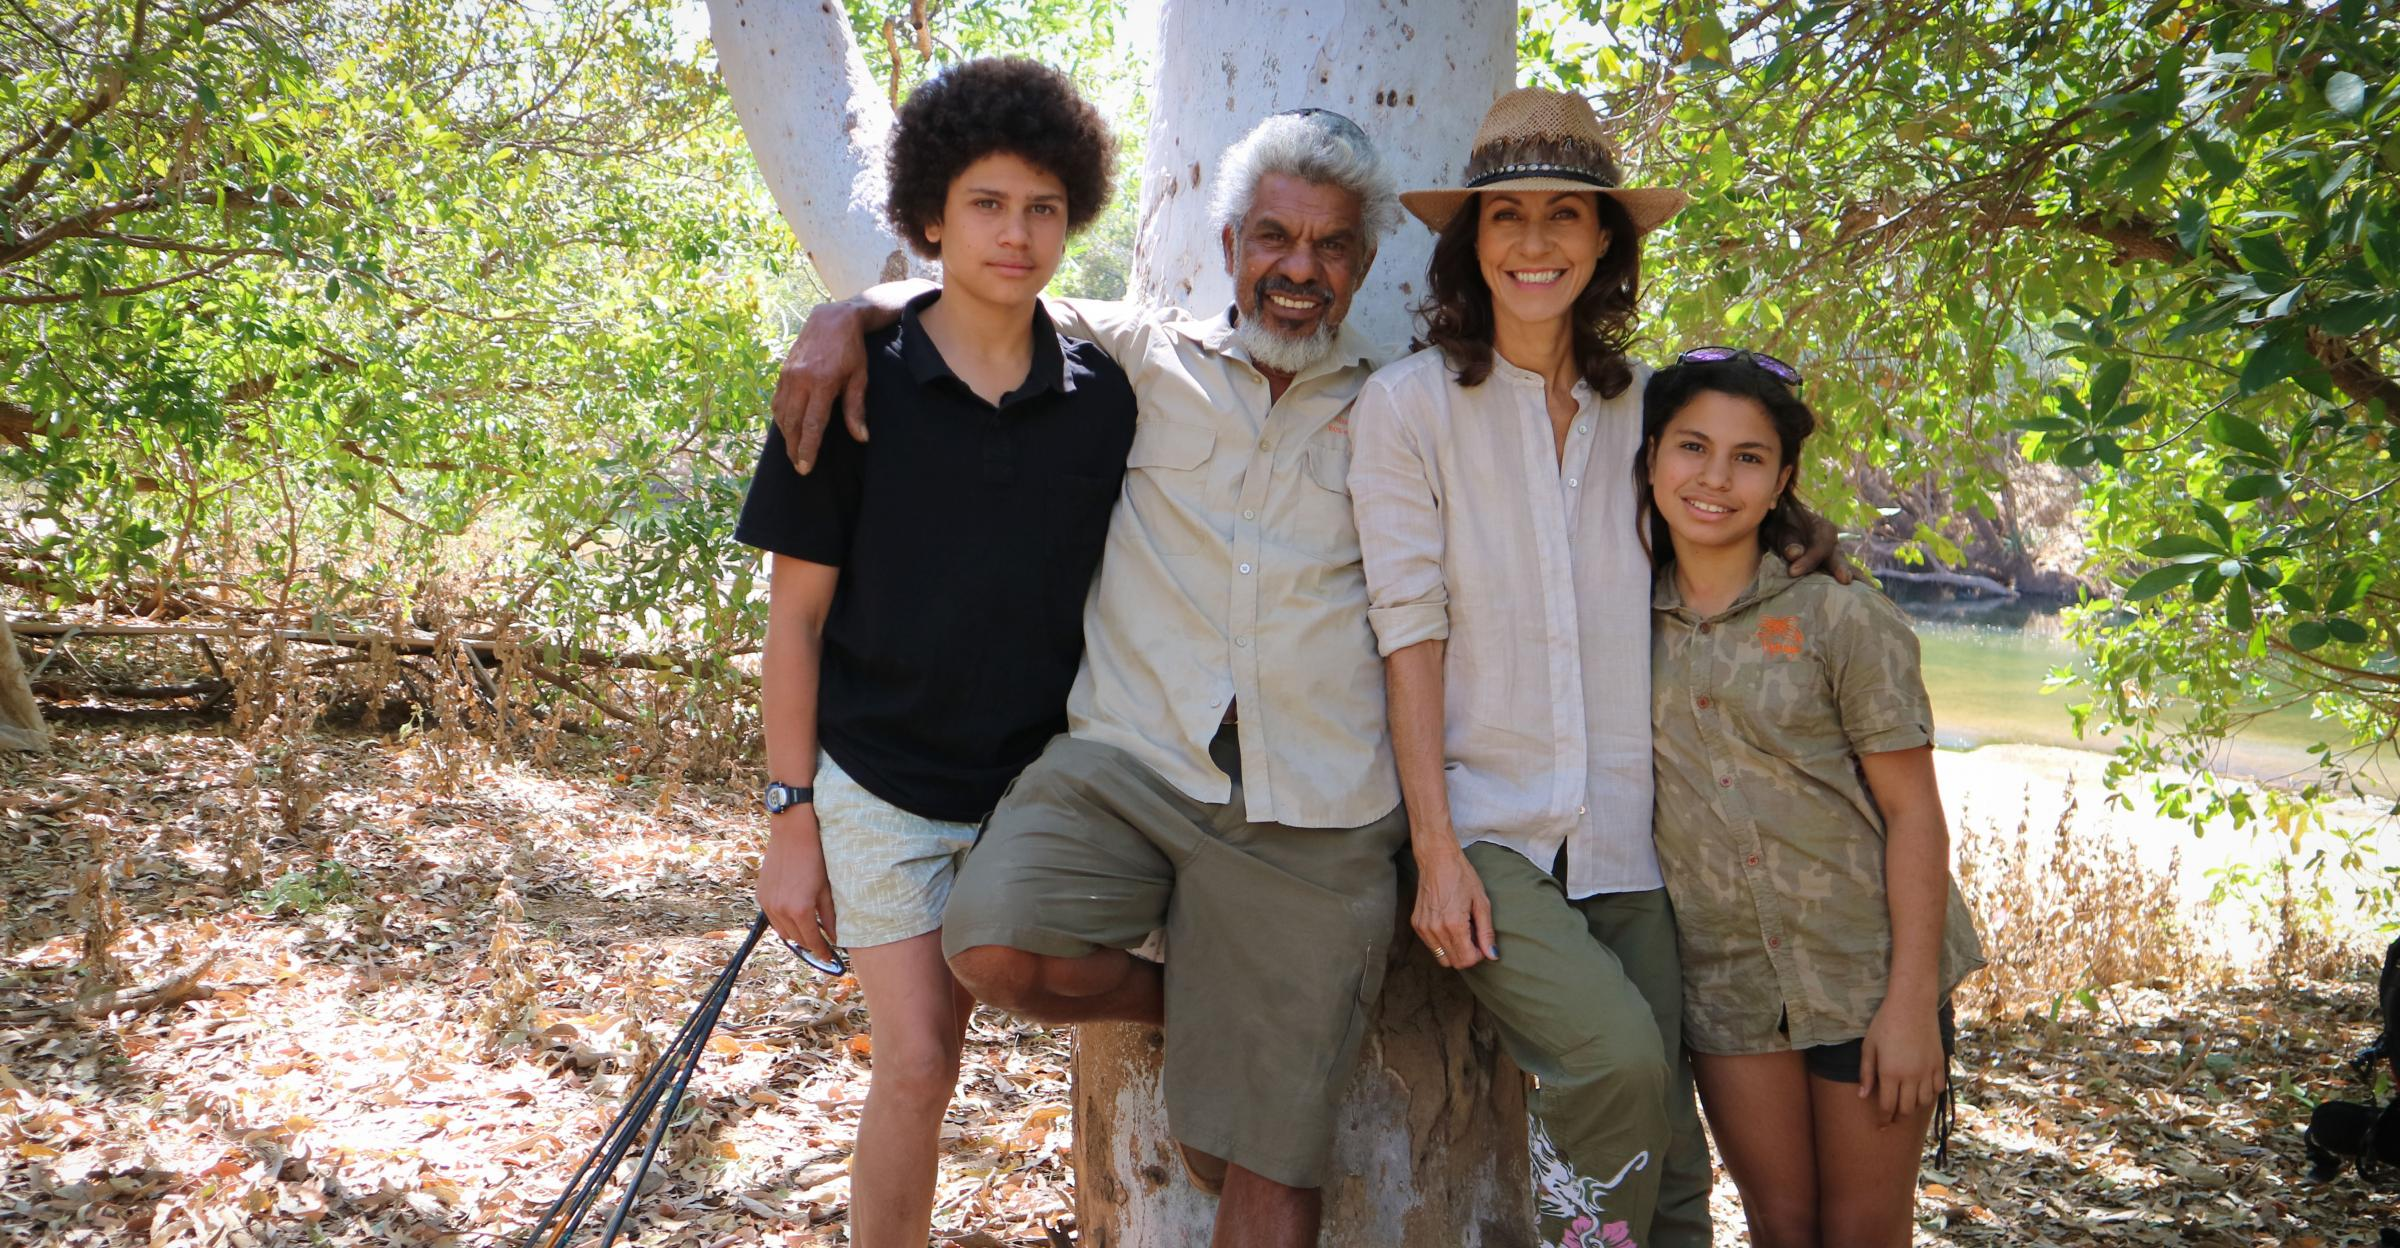 Julia Bradbury meets an Aboriginal family on her tour of Australia